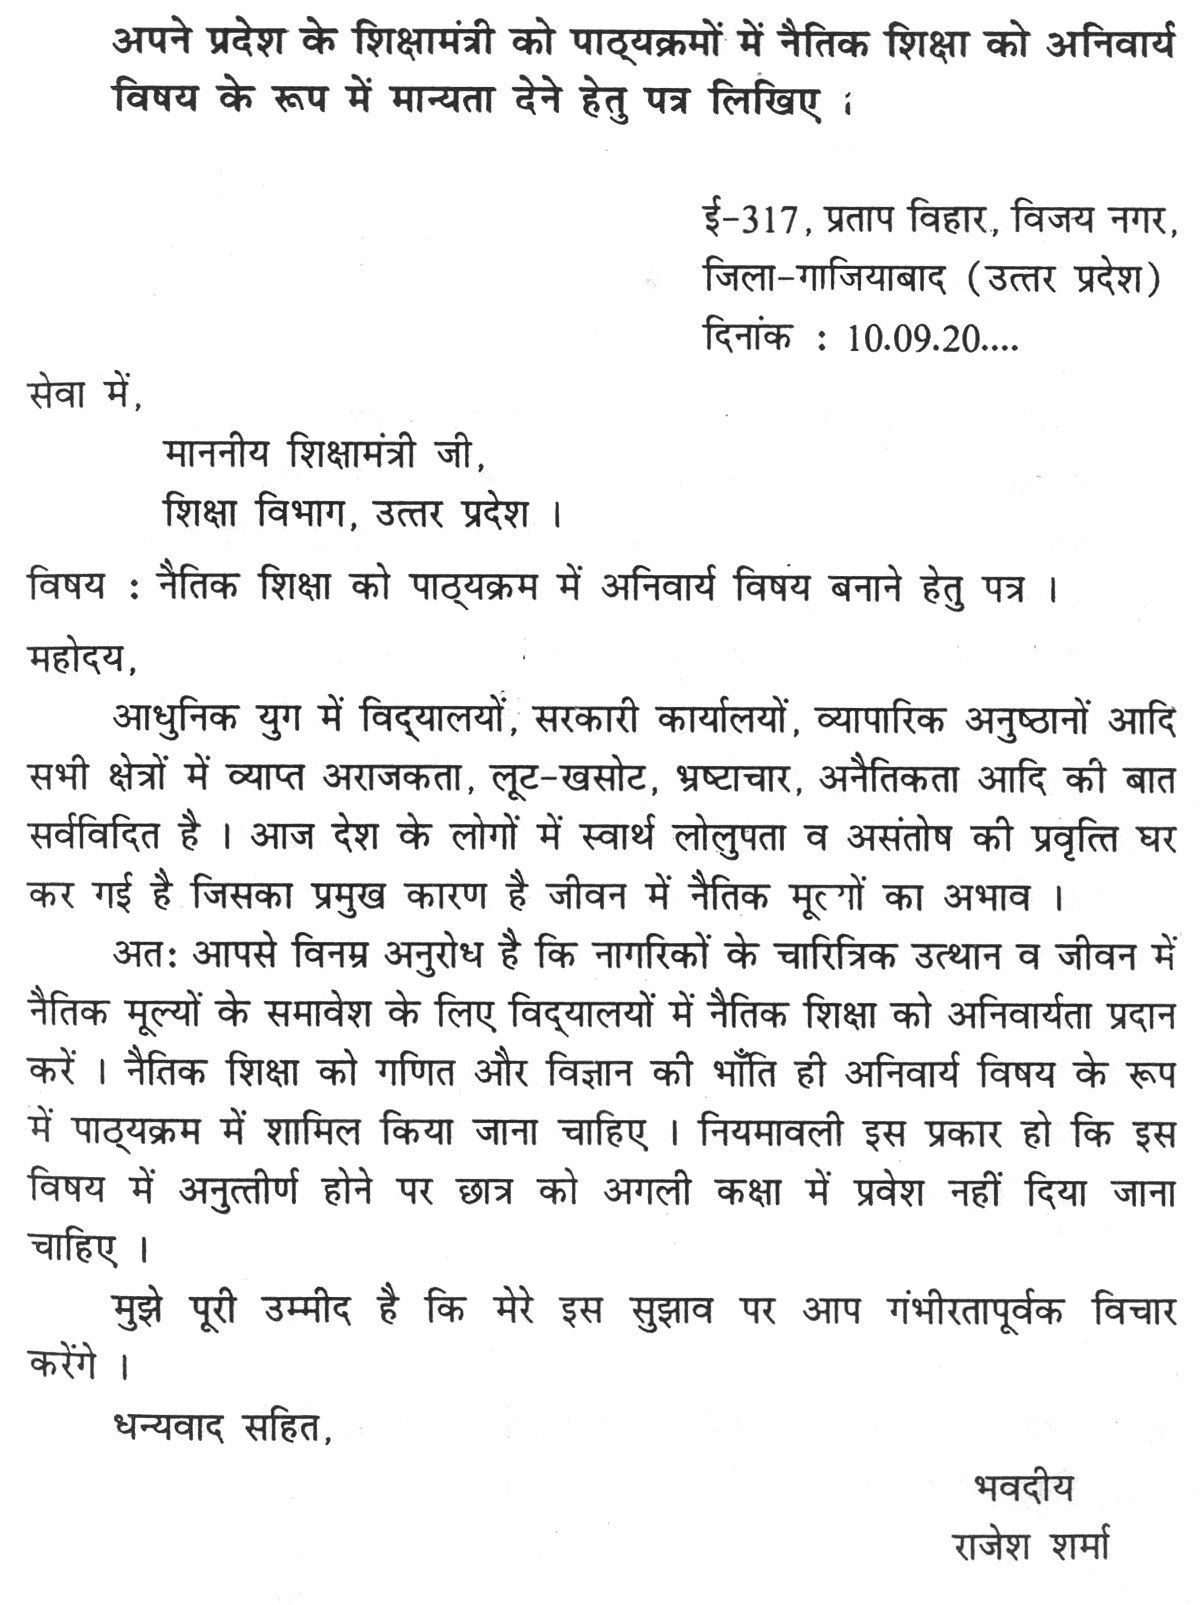 002 formal letter writing marathi language template complaint